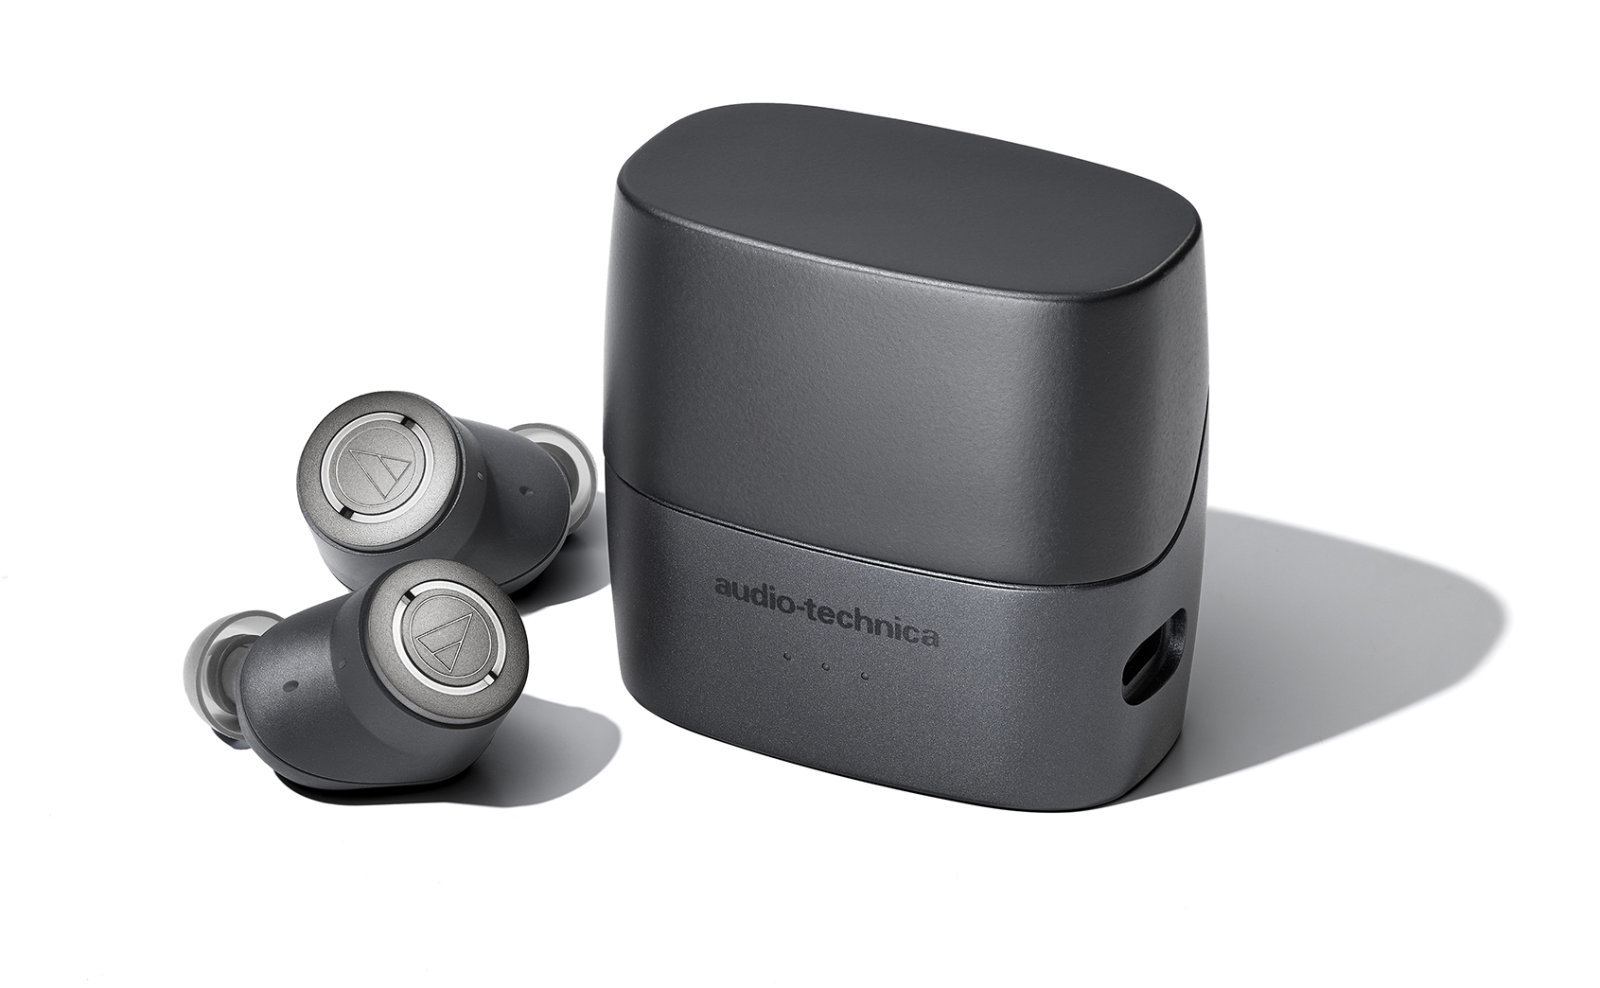 Audio-Technica brings active noise cancellation to its wireless earbuds